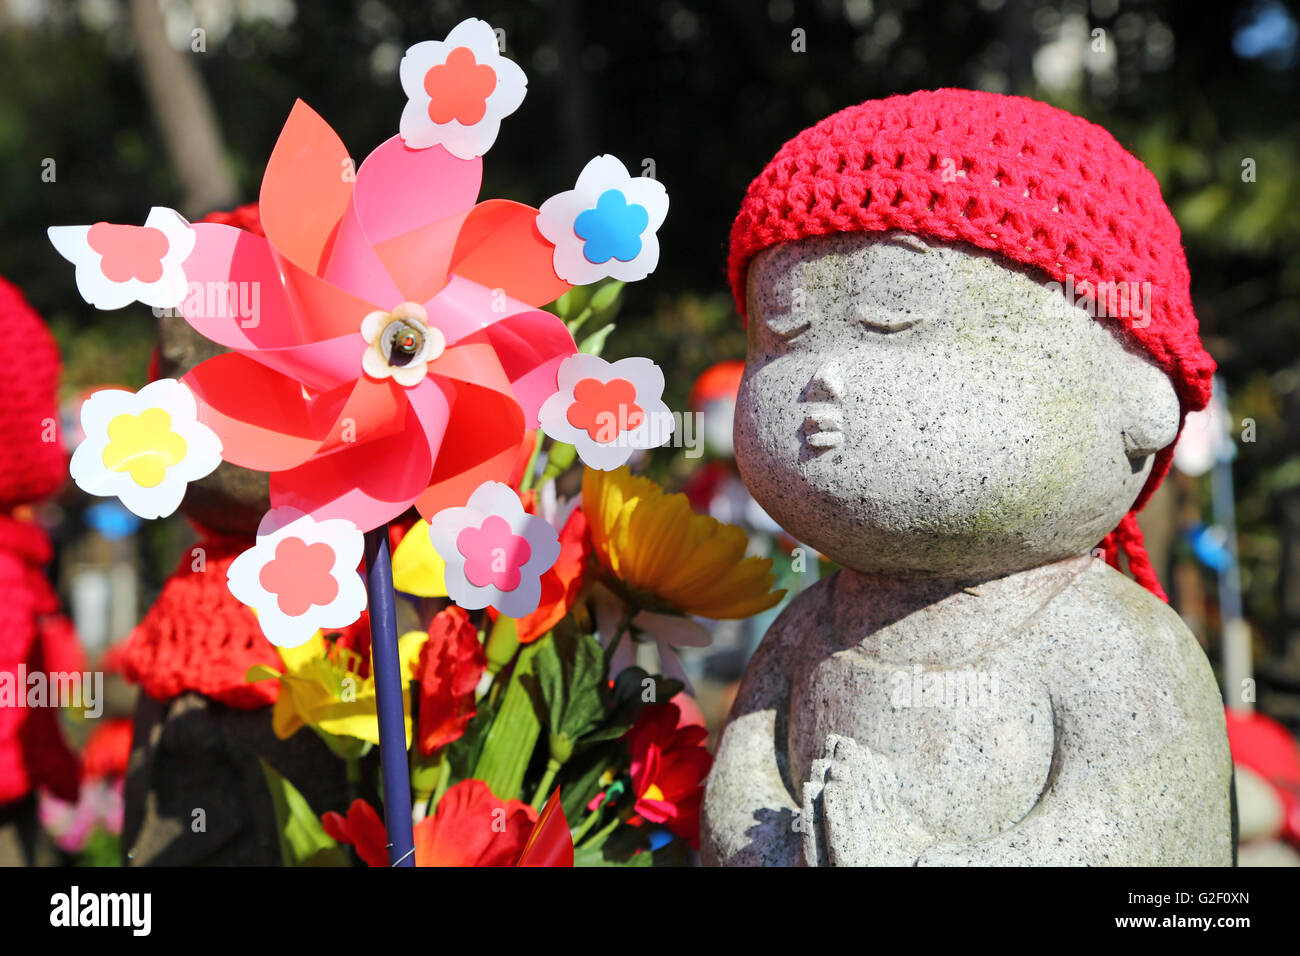 Jizo statues and pinwheel windmill toys in the Zojoji Temple cemetery garden in Tokyo, Japan - Stock Image